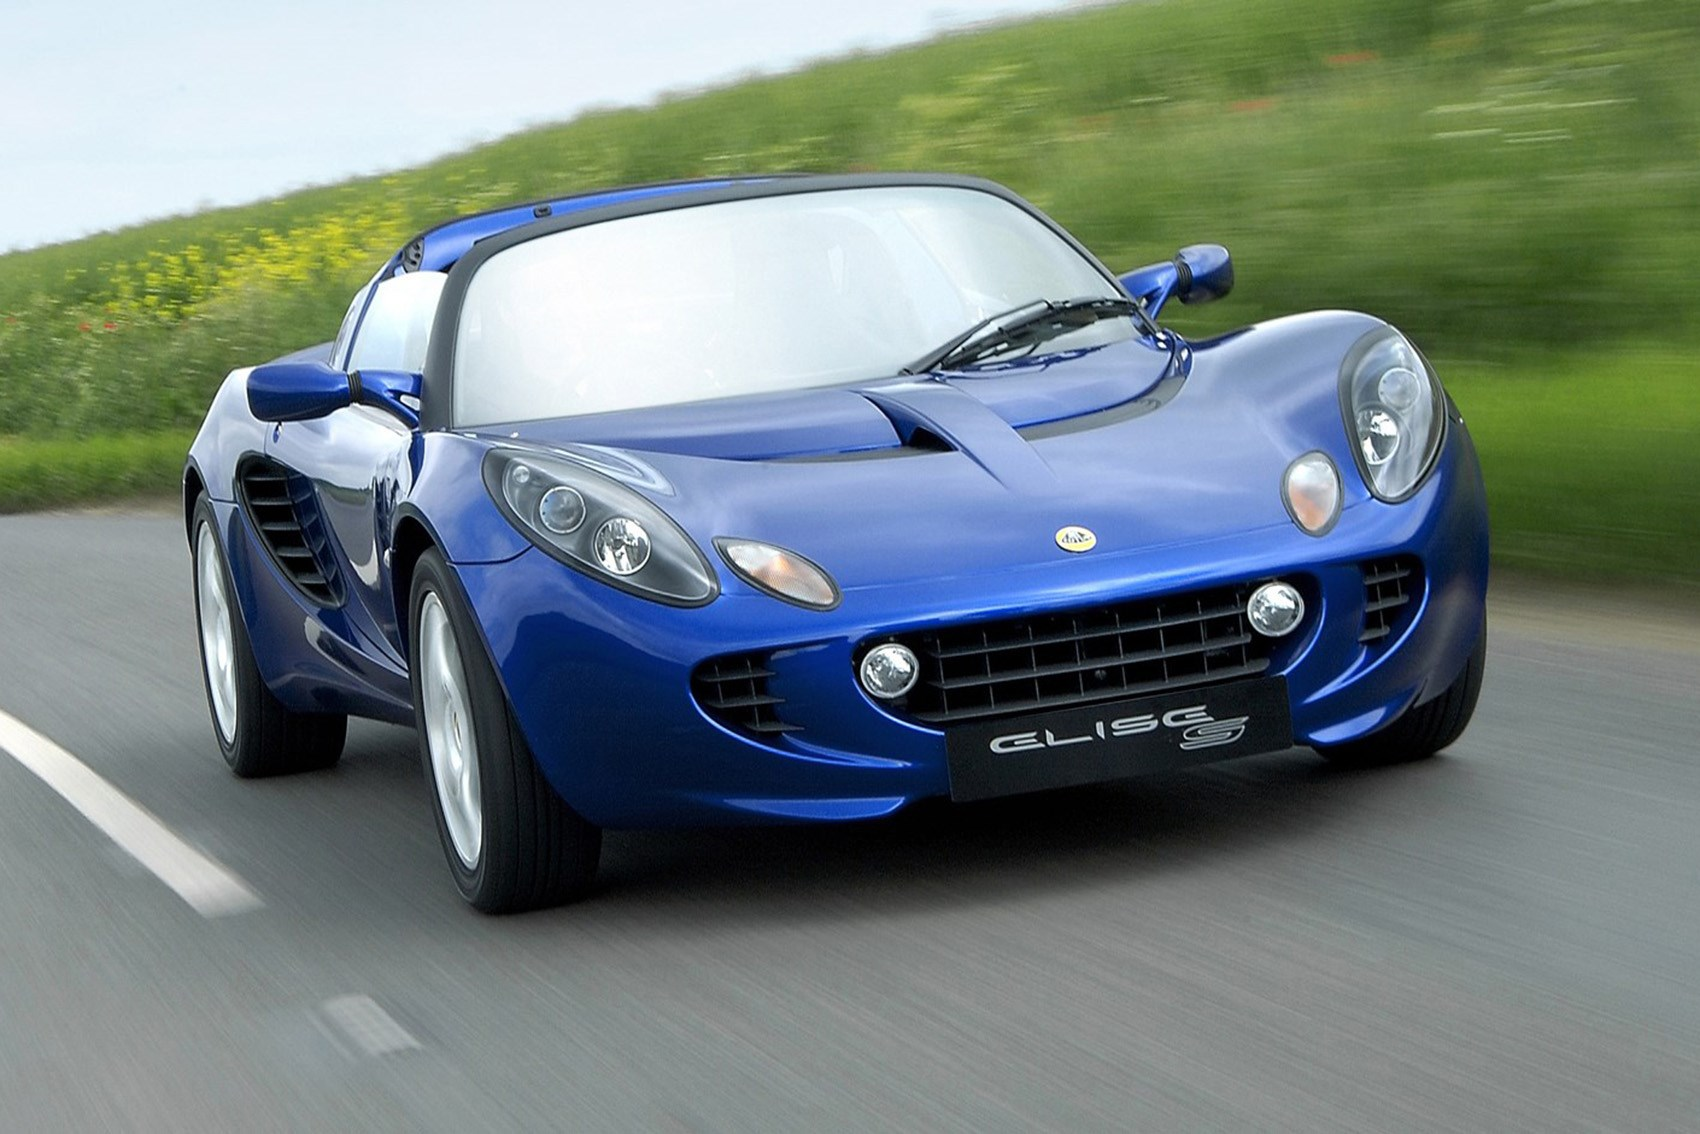 The Best Fast AND Economical Cars Parkers - Economical sports cars